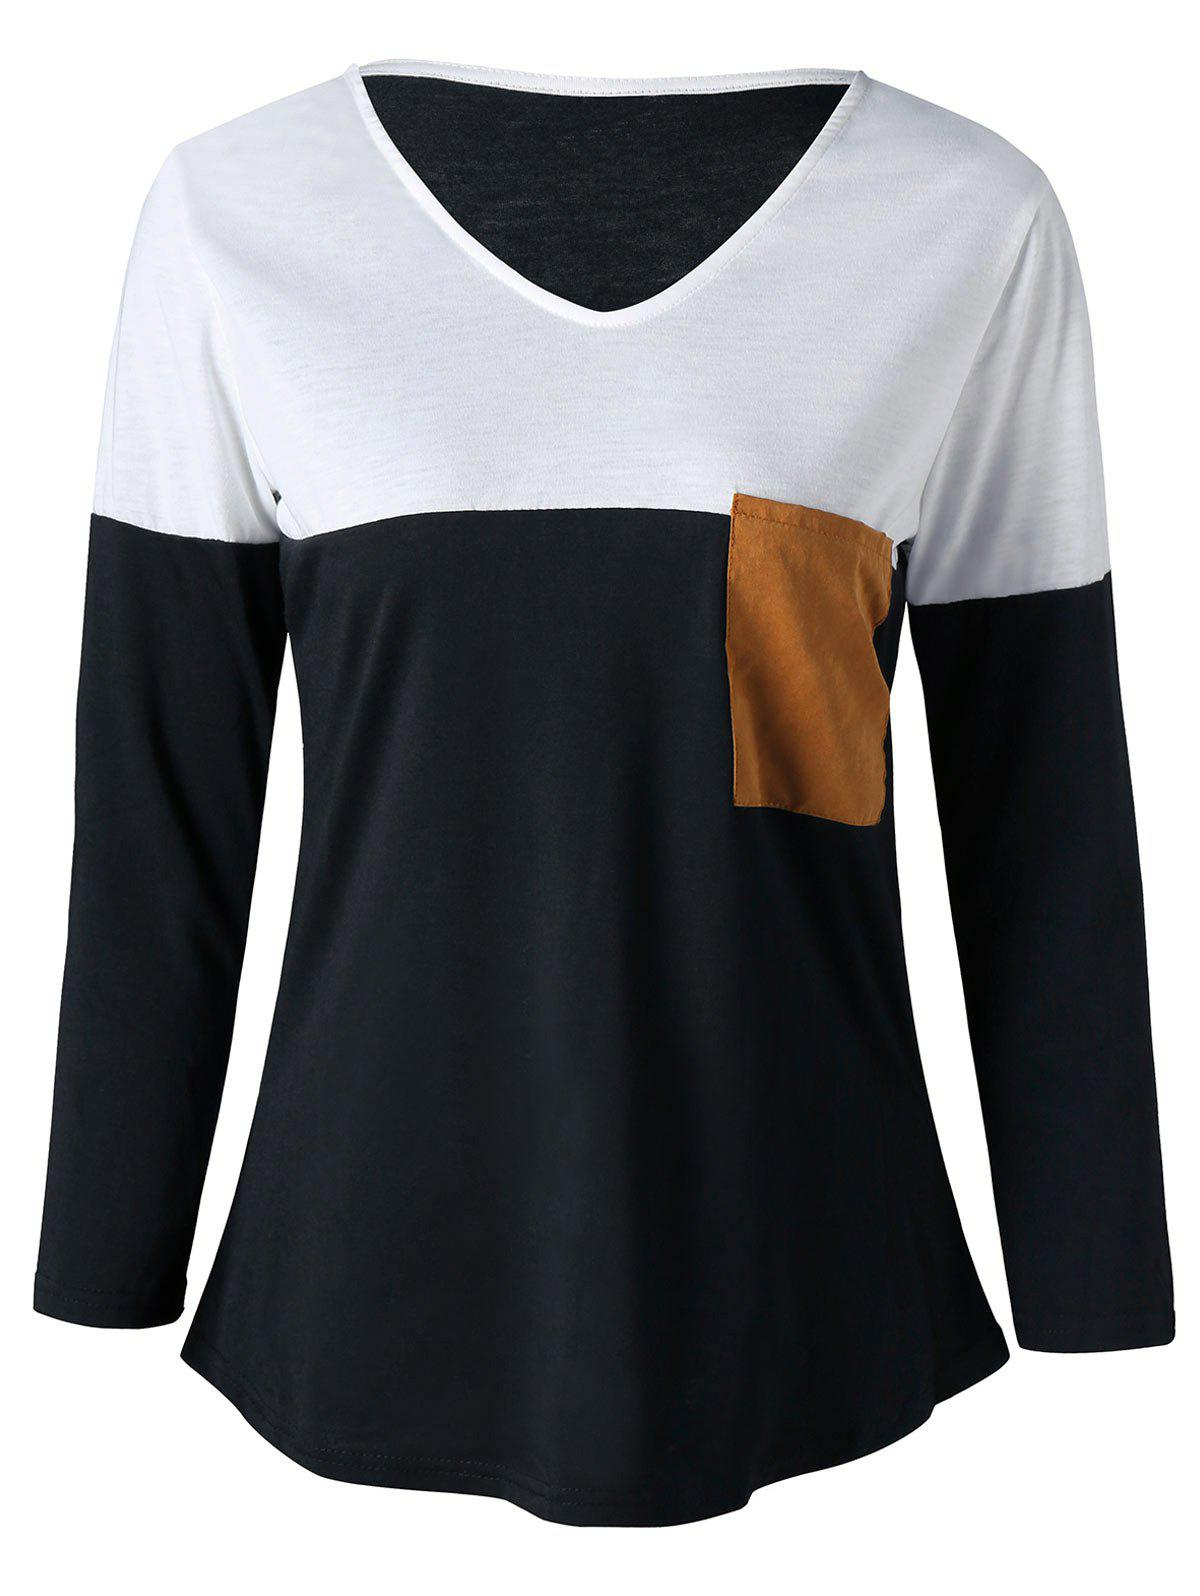 V Neck Elbow Patch Top dark grey elbow patch round neck long sleeves top